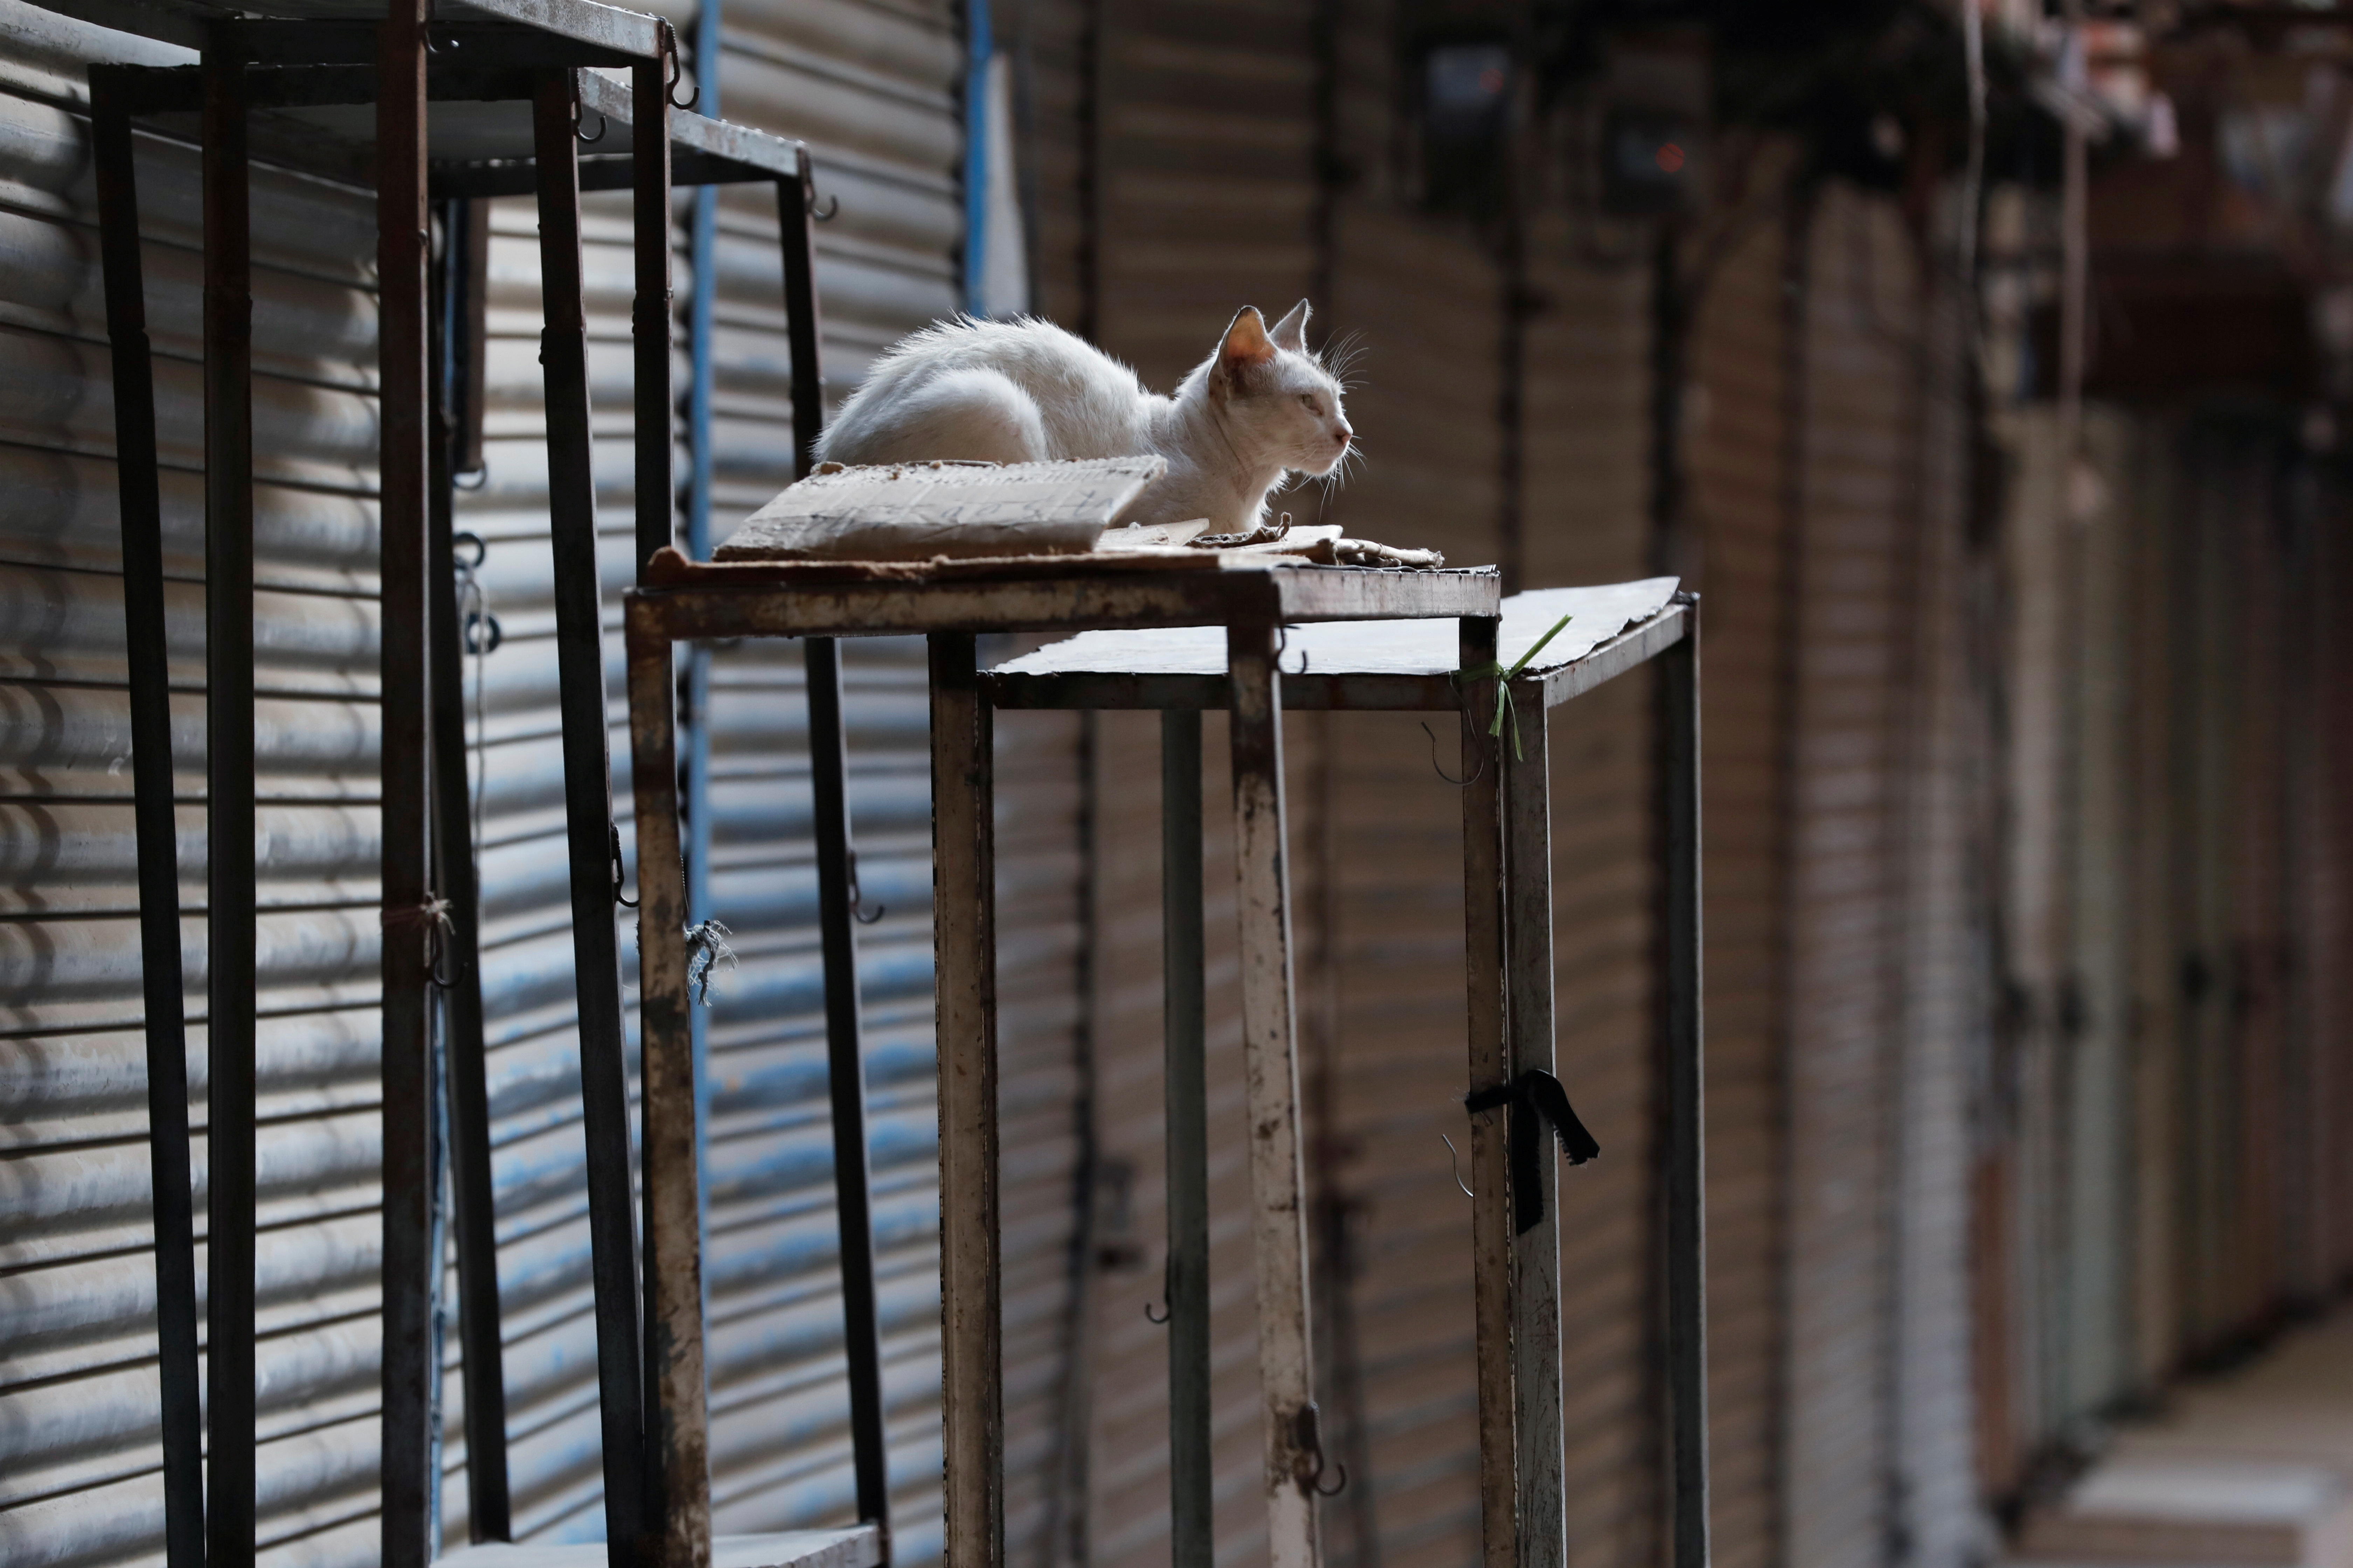 A cat is seen at a closed market during a contrywide strike by the banned Islamist political party Tehrik-e-Labaik Pakistan (TLP) in Karachi, Pakistan April 19, 2021.REUTERS/Akhtar Soomro